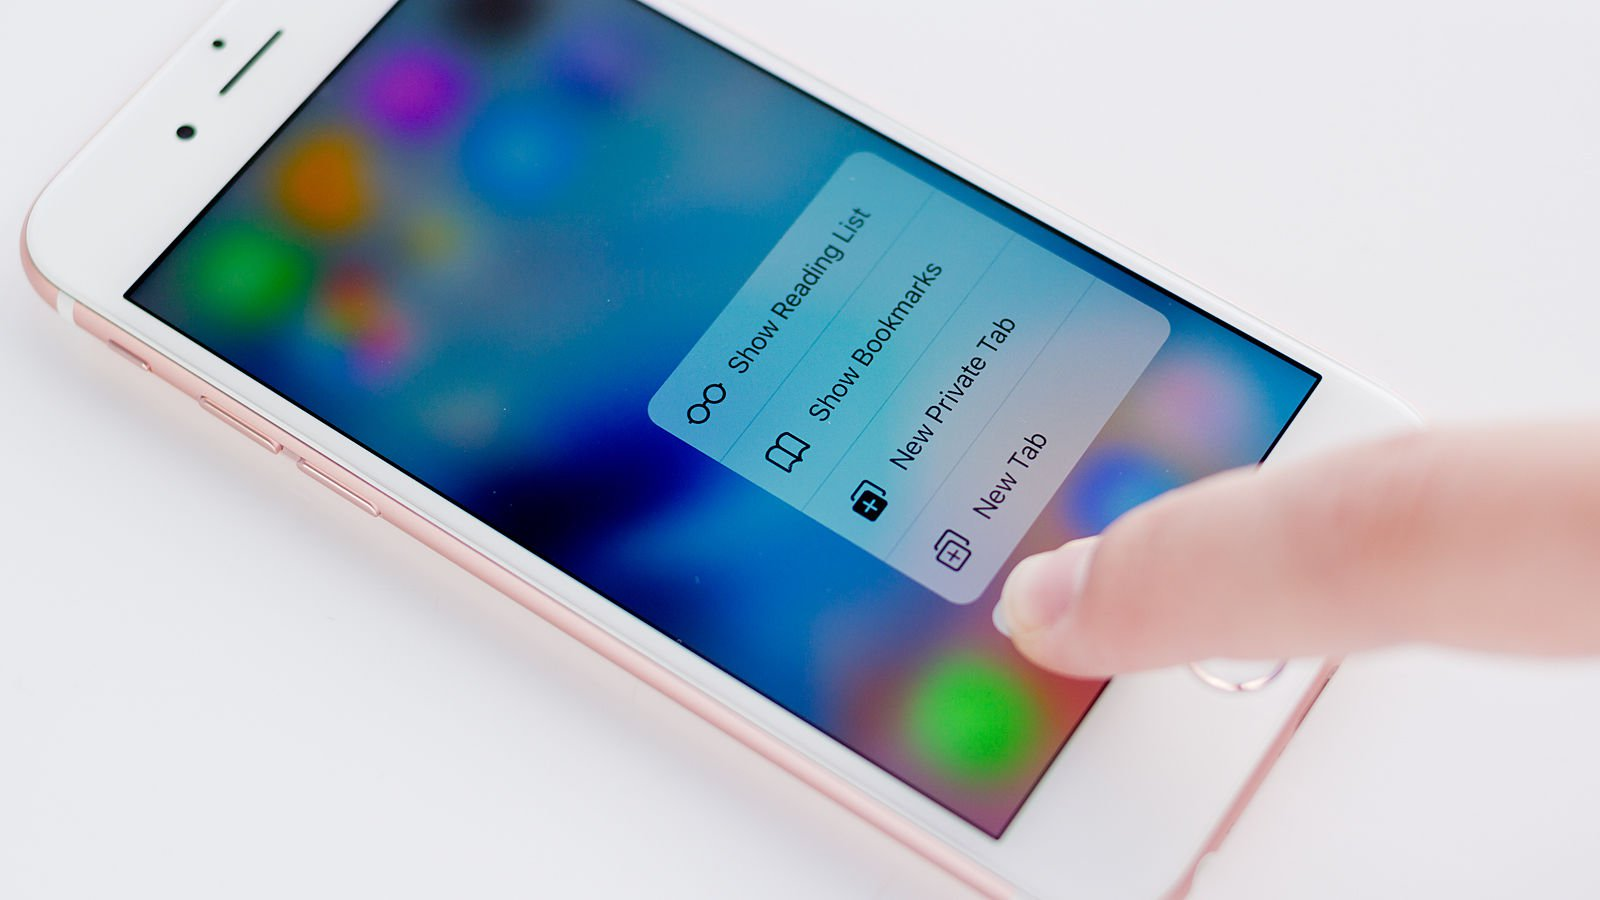 Display iPhone 6s Tehnologie 3D Touch, mai rezistent la socuri mecanice.